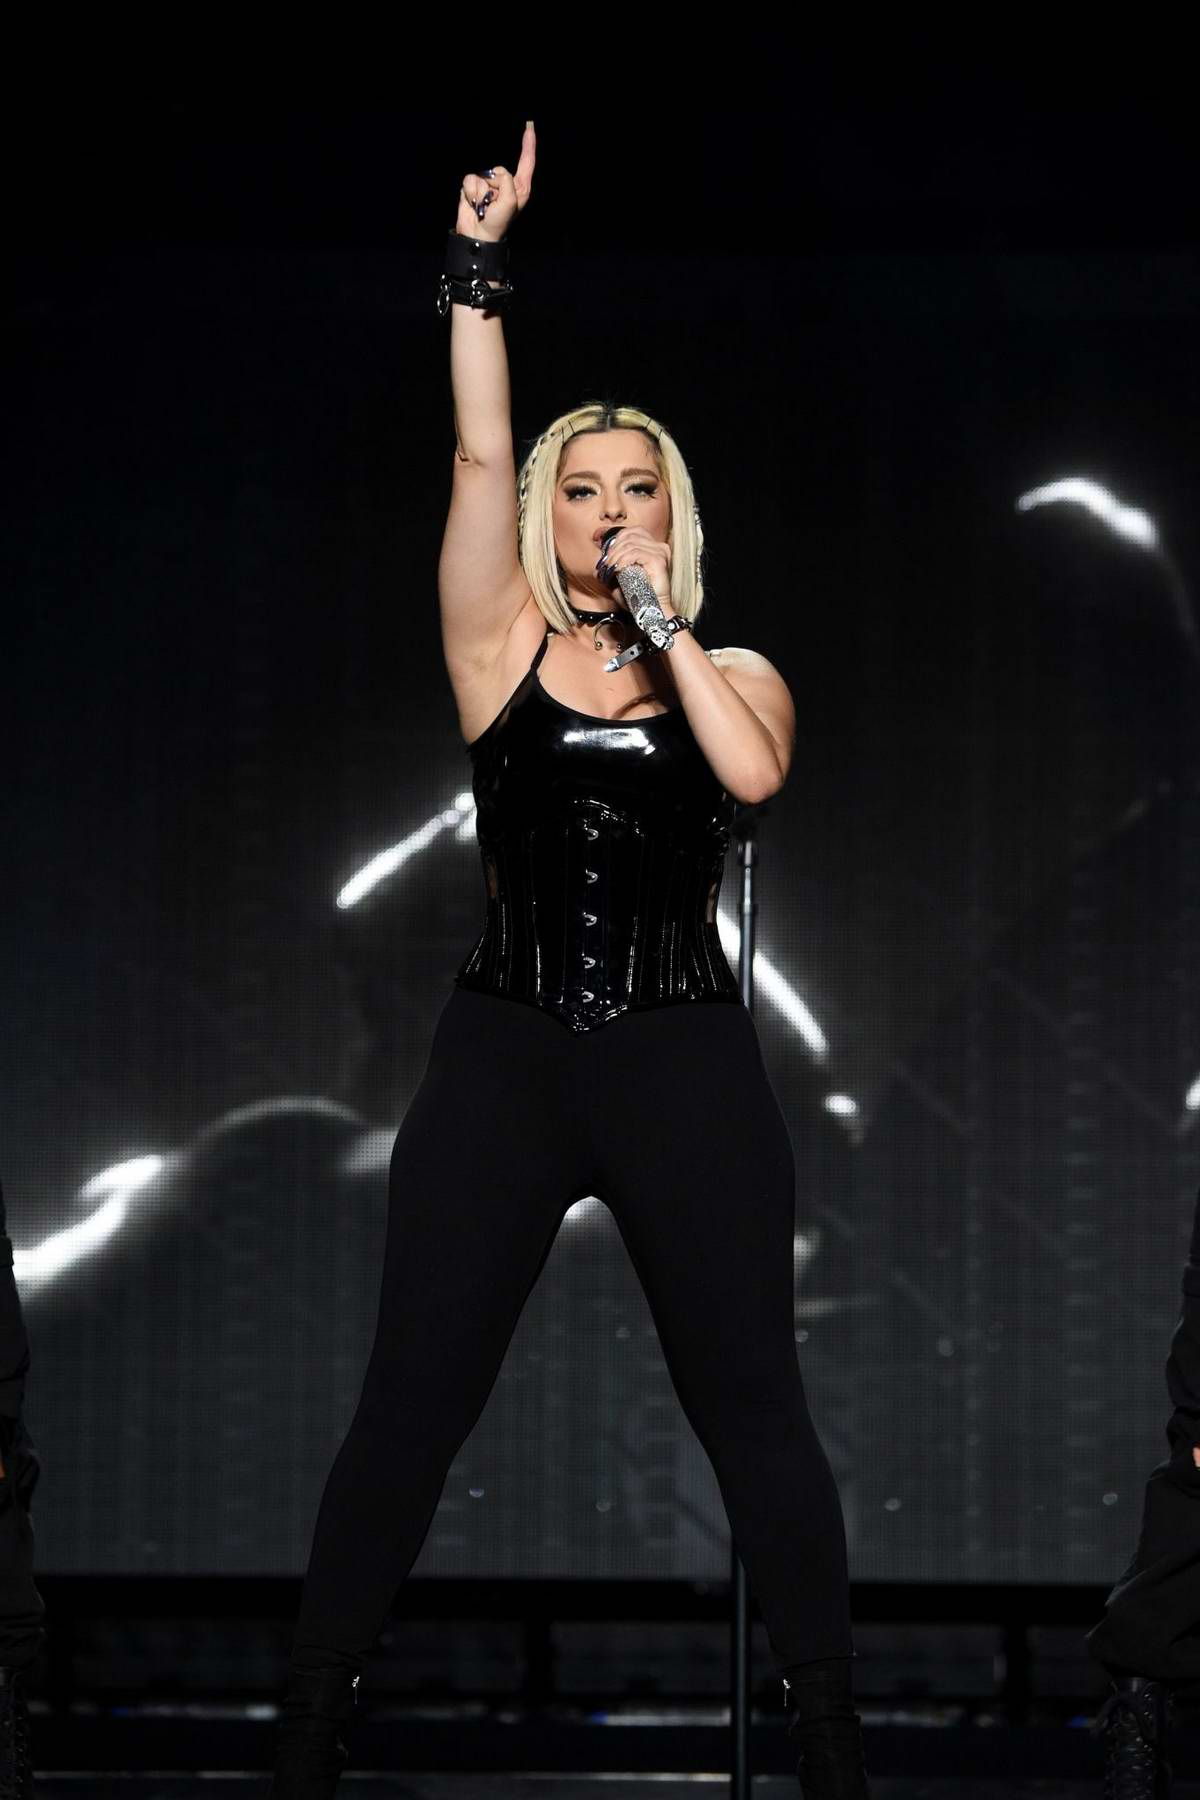 Bebe Rexha performs as an opening act during the Jonas Brothers 'Happiness Begins' Tour at Prudential Center in Newark, New Jersey